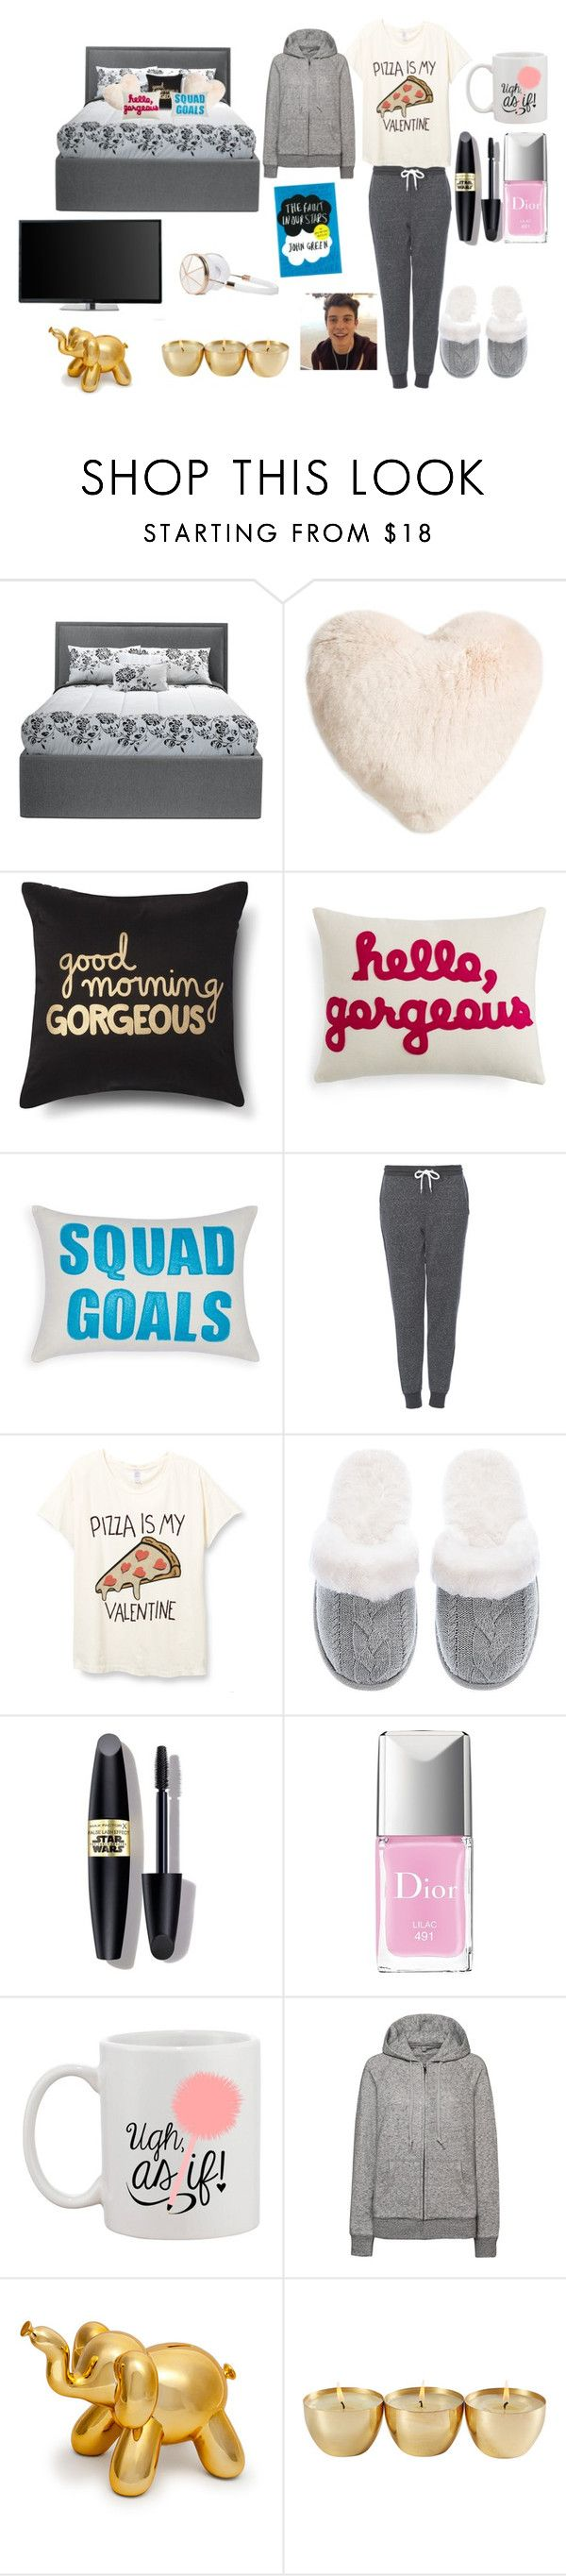 """""""Valentines Day outfit because im a single pringle, but listening to Shawn Mendes makes my day every day❤️"""" by kari-luvs-u-2 ❤ liked on Polyvore featuring Nordstrom, Xhilaration, Alexandra Ferguson, Topshop, Victoria's Secret, Max Factor, Christian Dior, Uniqlo, Frends and women's clothing"""